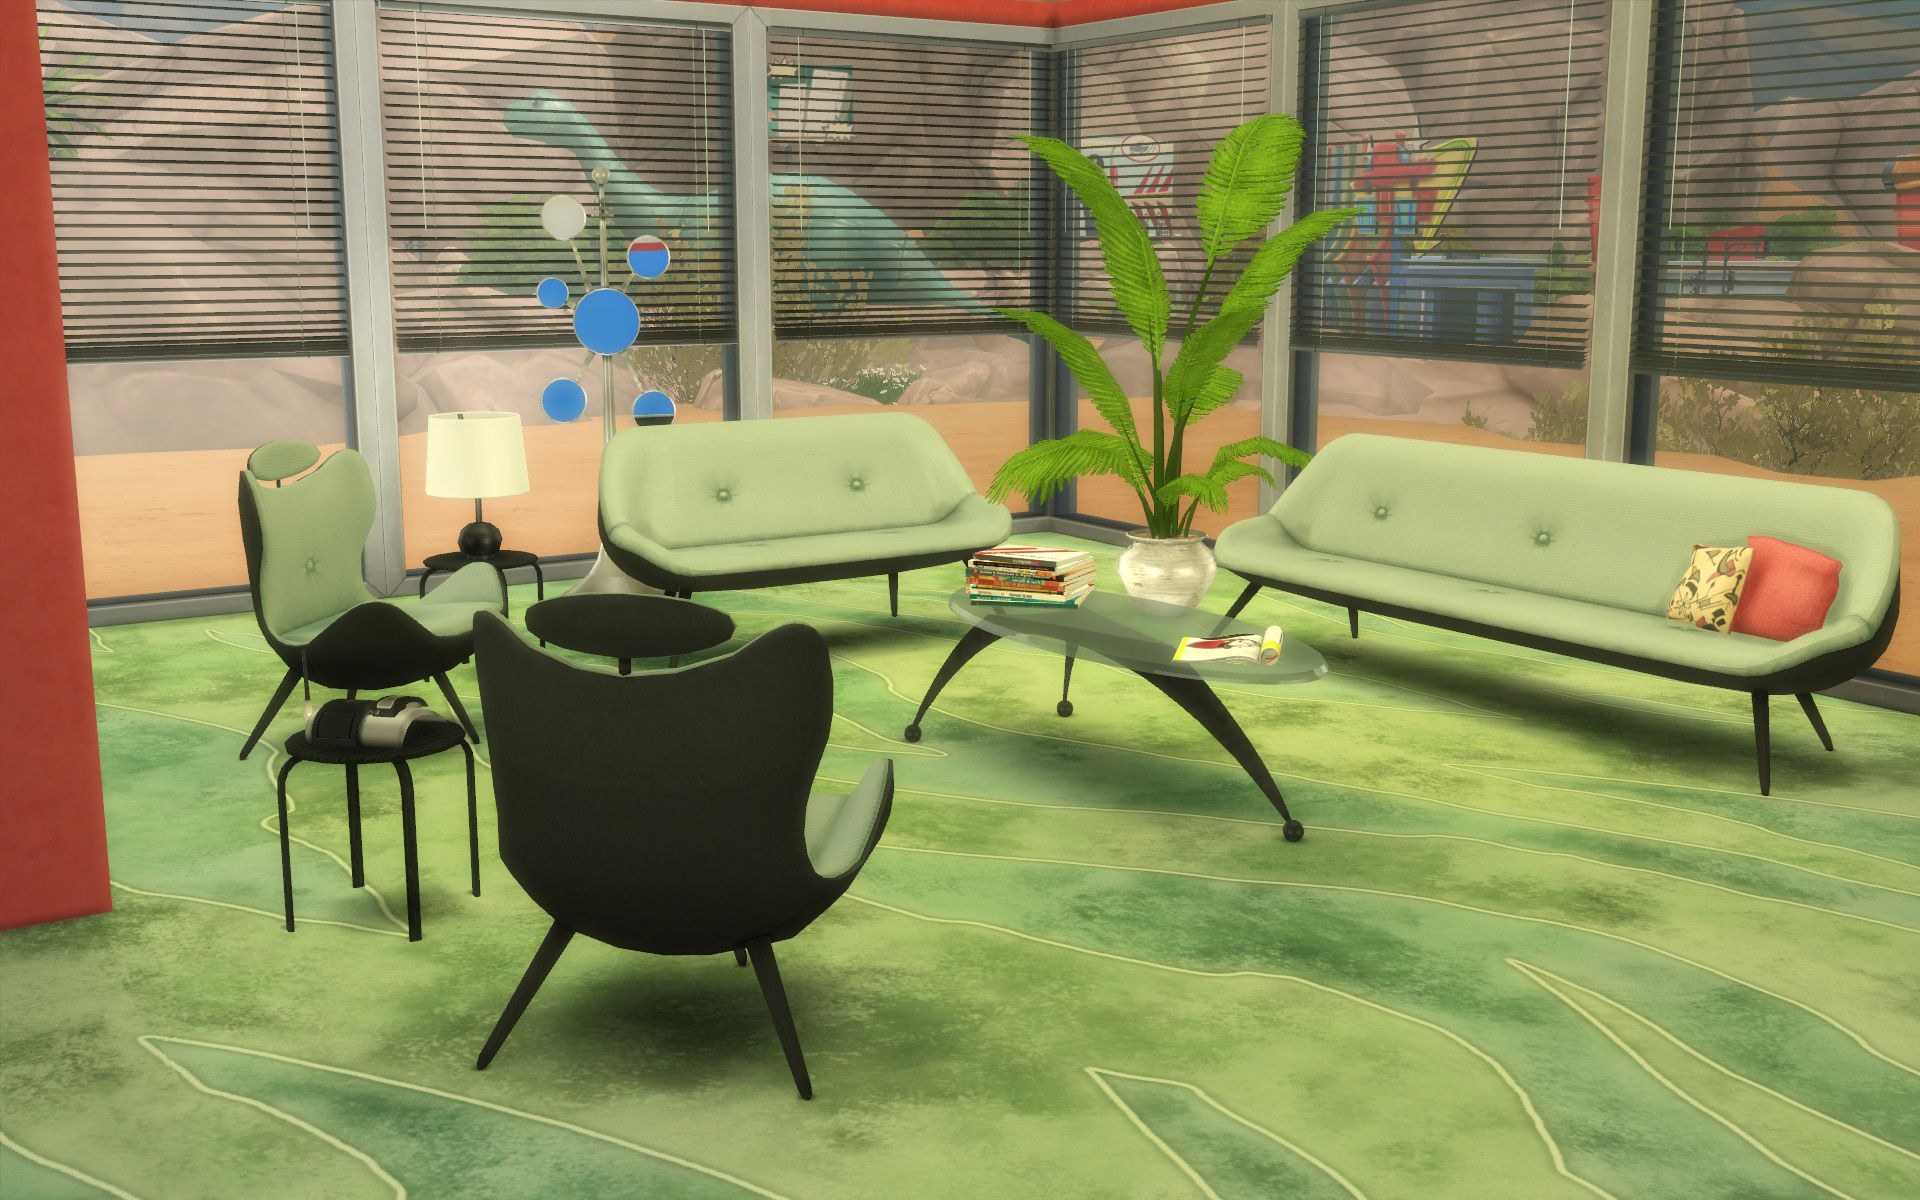 Ts2 To Ts4 60s Living Room Set Sims 4 Updates Sims